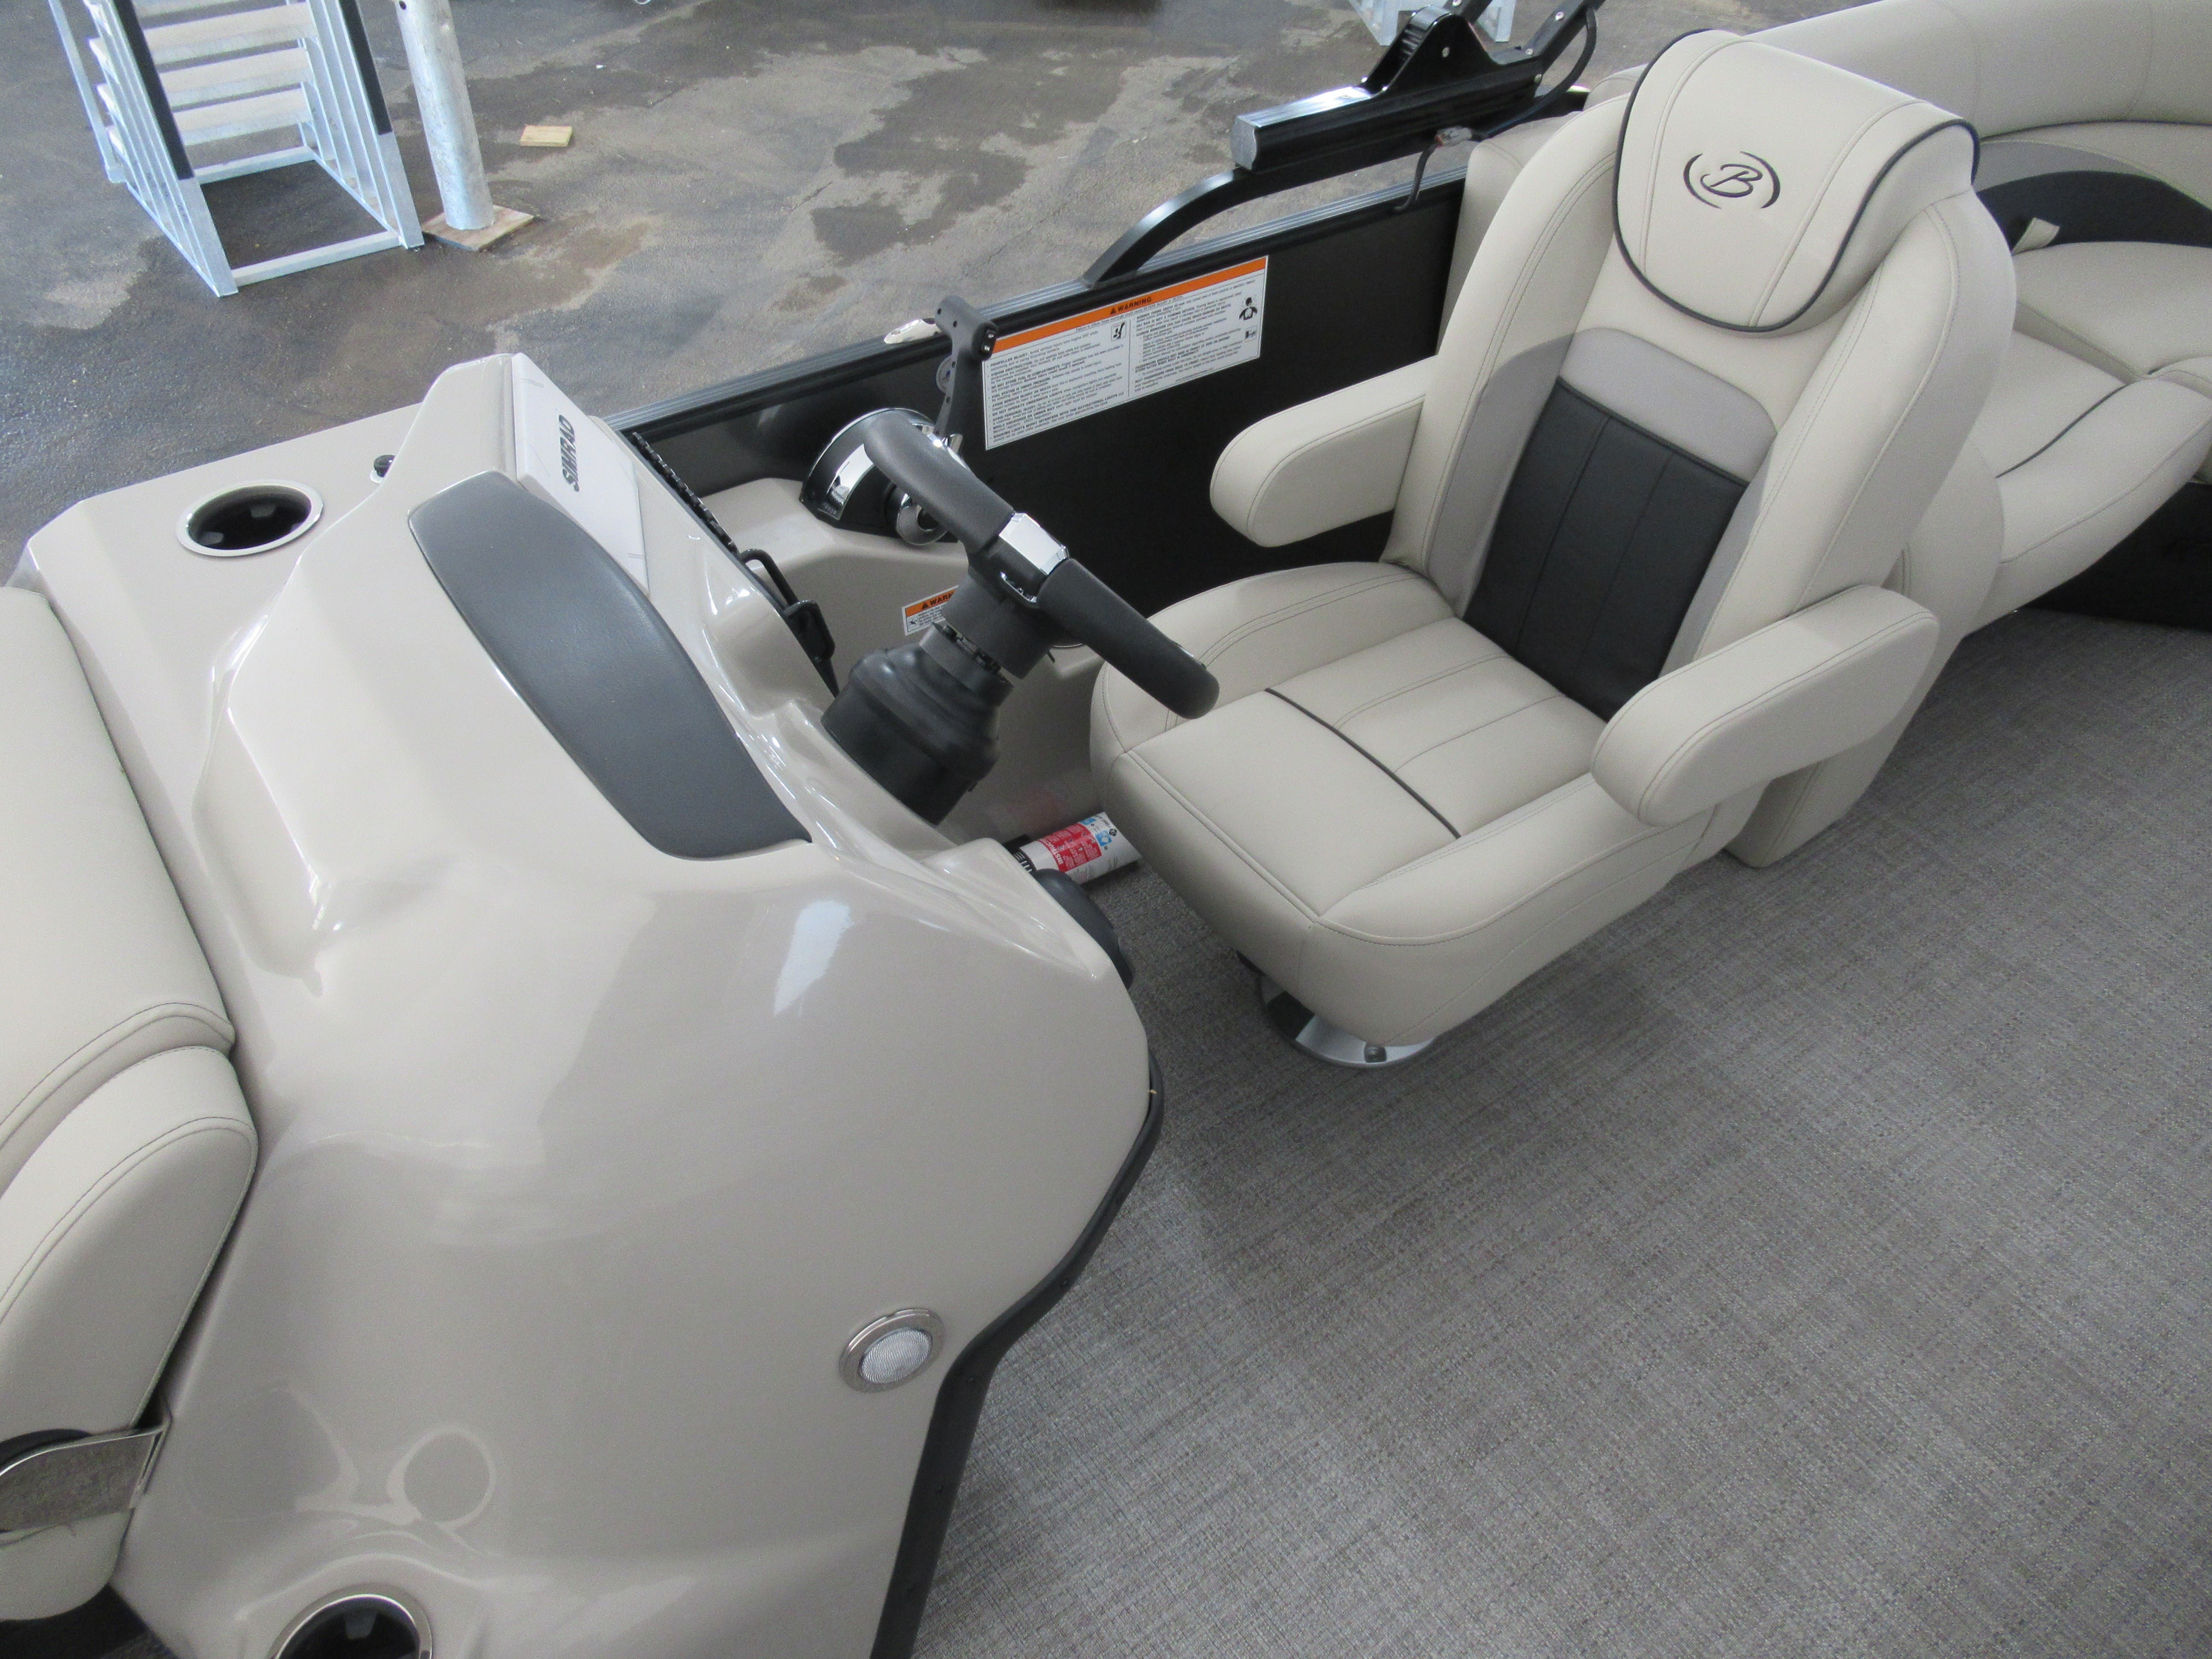 2021 Barletta boat for sale, model of the boat is C20QC & Image # 6 of 11